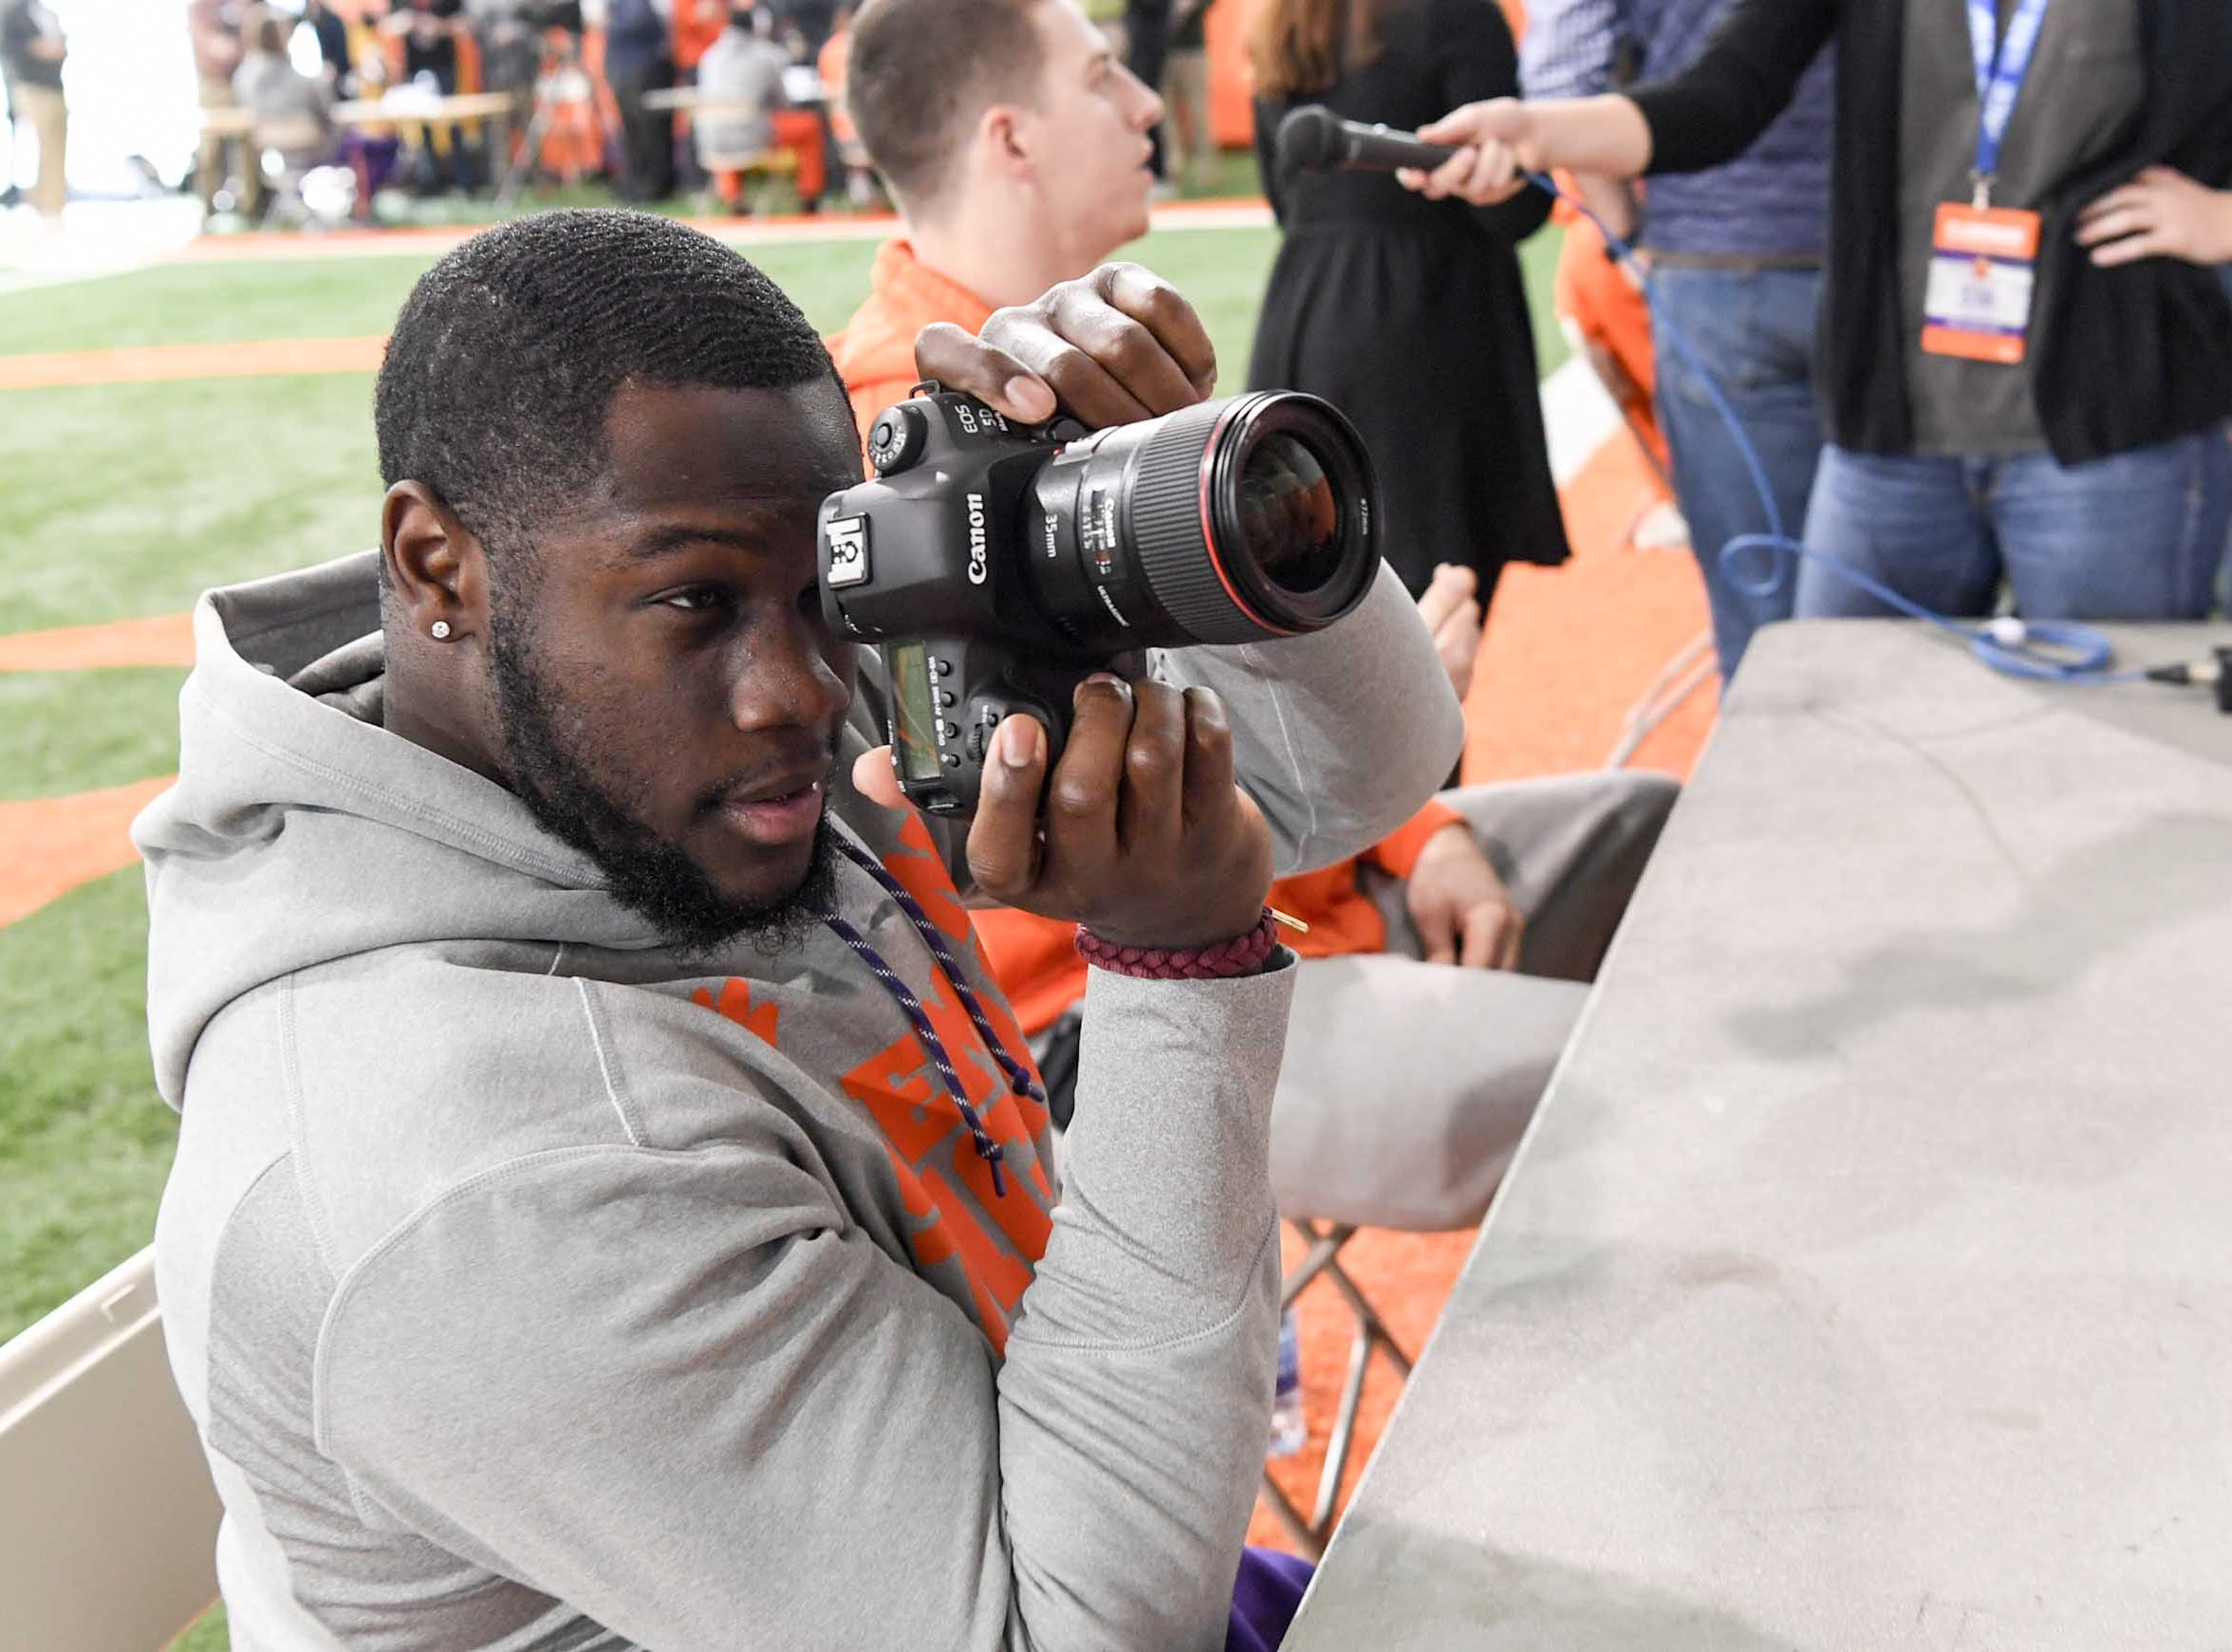 Clemson tight end Milan Richard takes a moment to get a photo of reporter Maddie Williams, a student at Clemson, during media day in the Poe Indoor Facility in Clemson Wednesday, January 2, 2019.